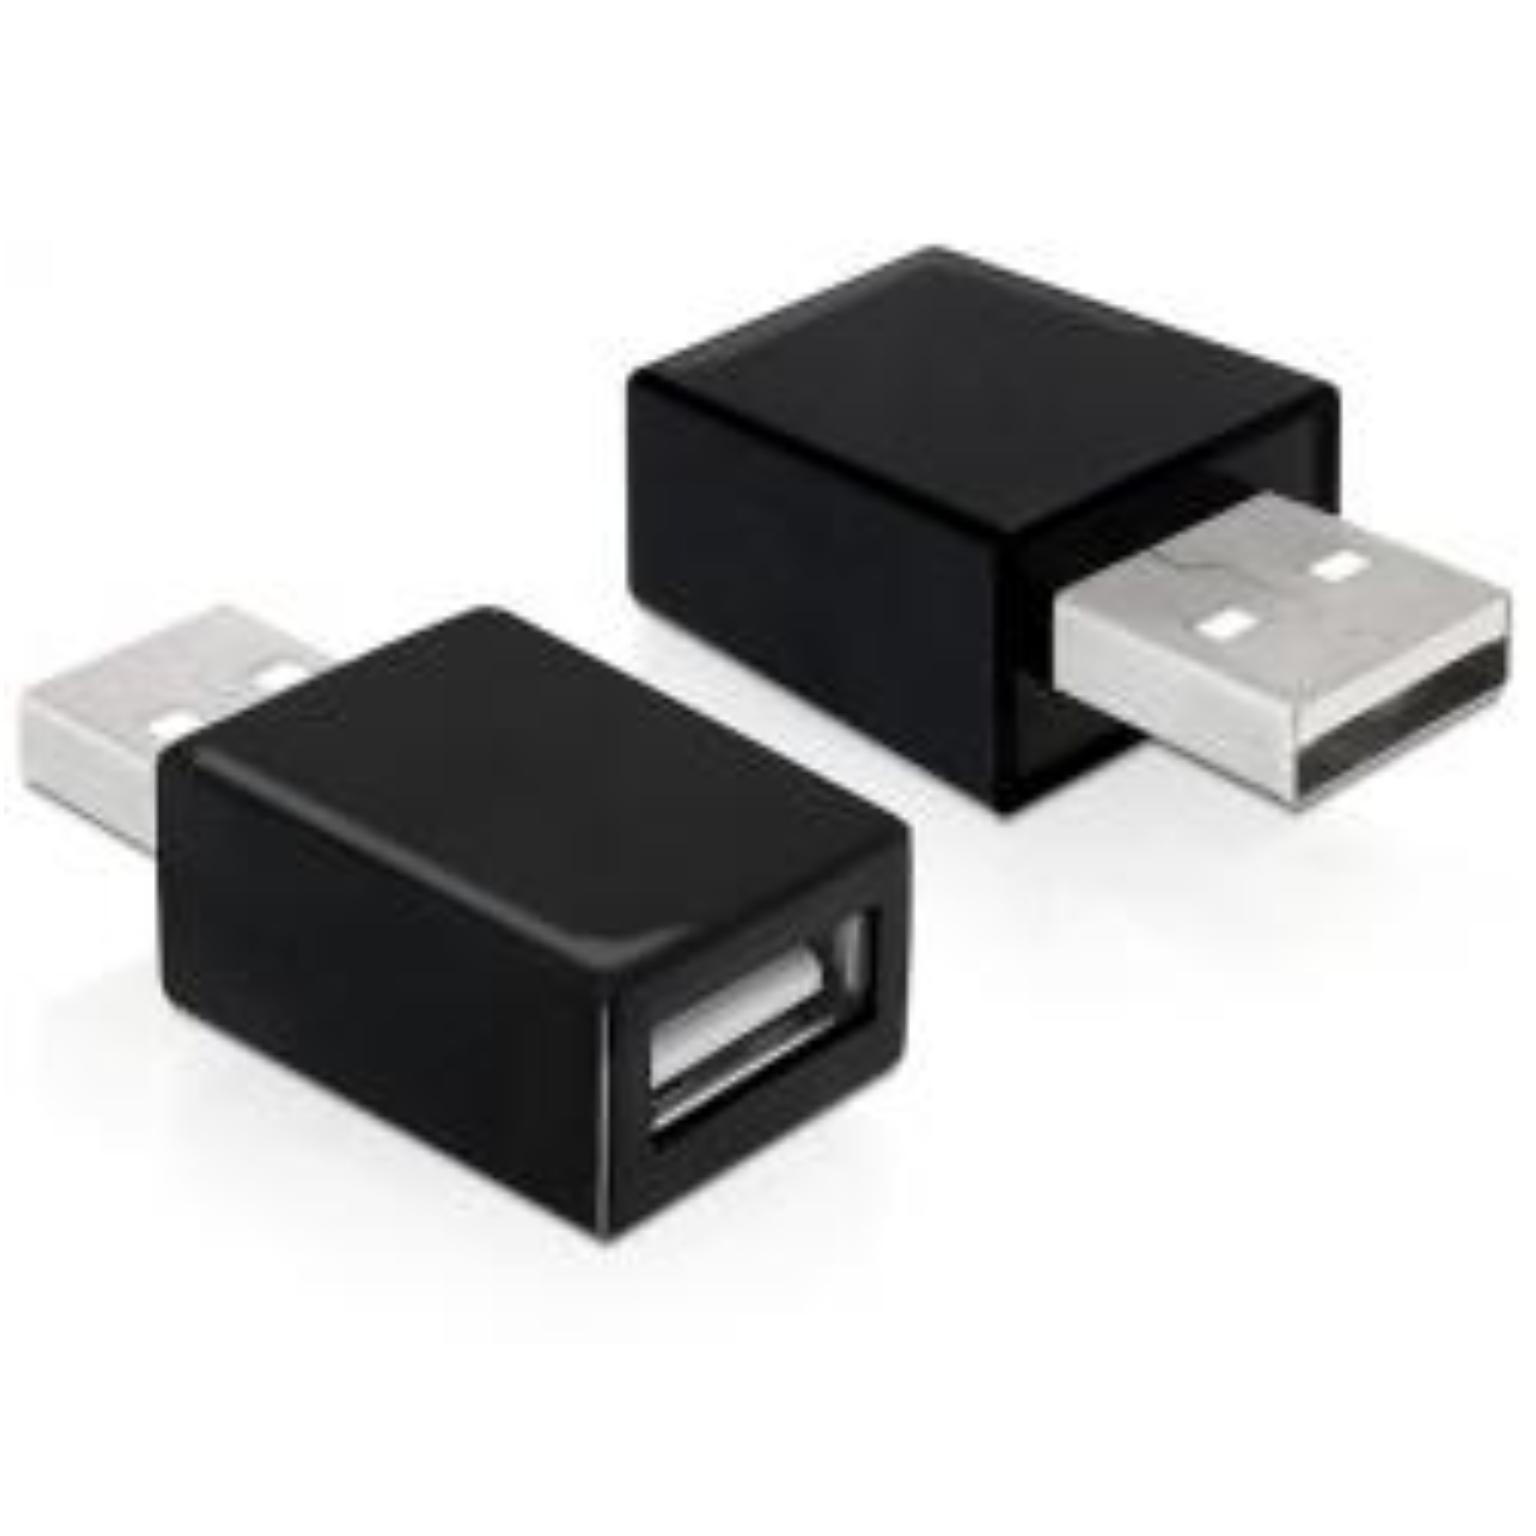 USB 2.0 Adapter